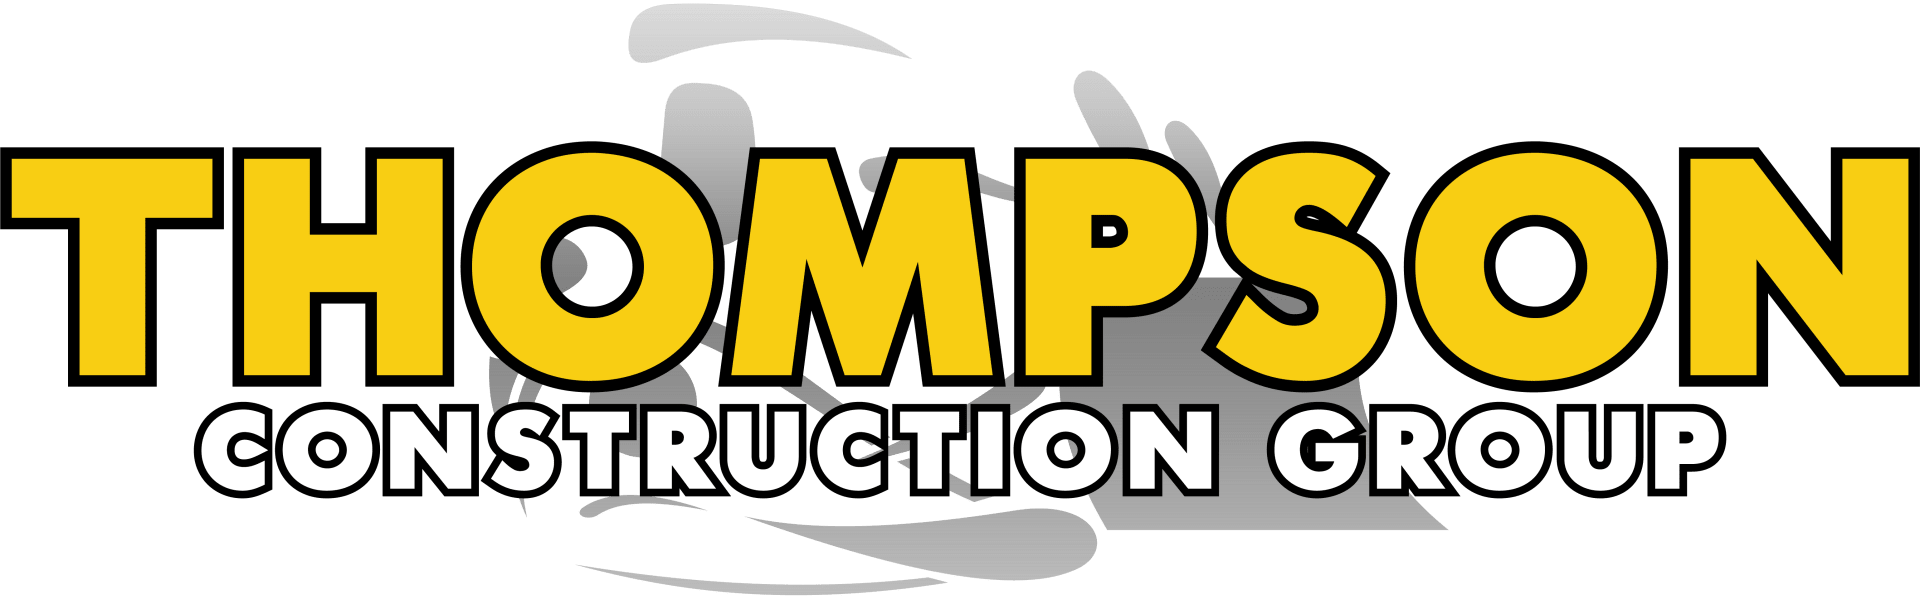 Thompson-Construction-Group-w1920.png